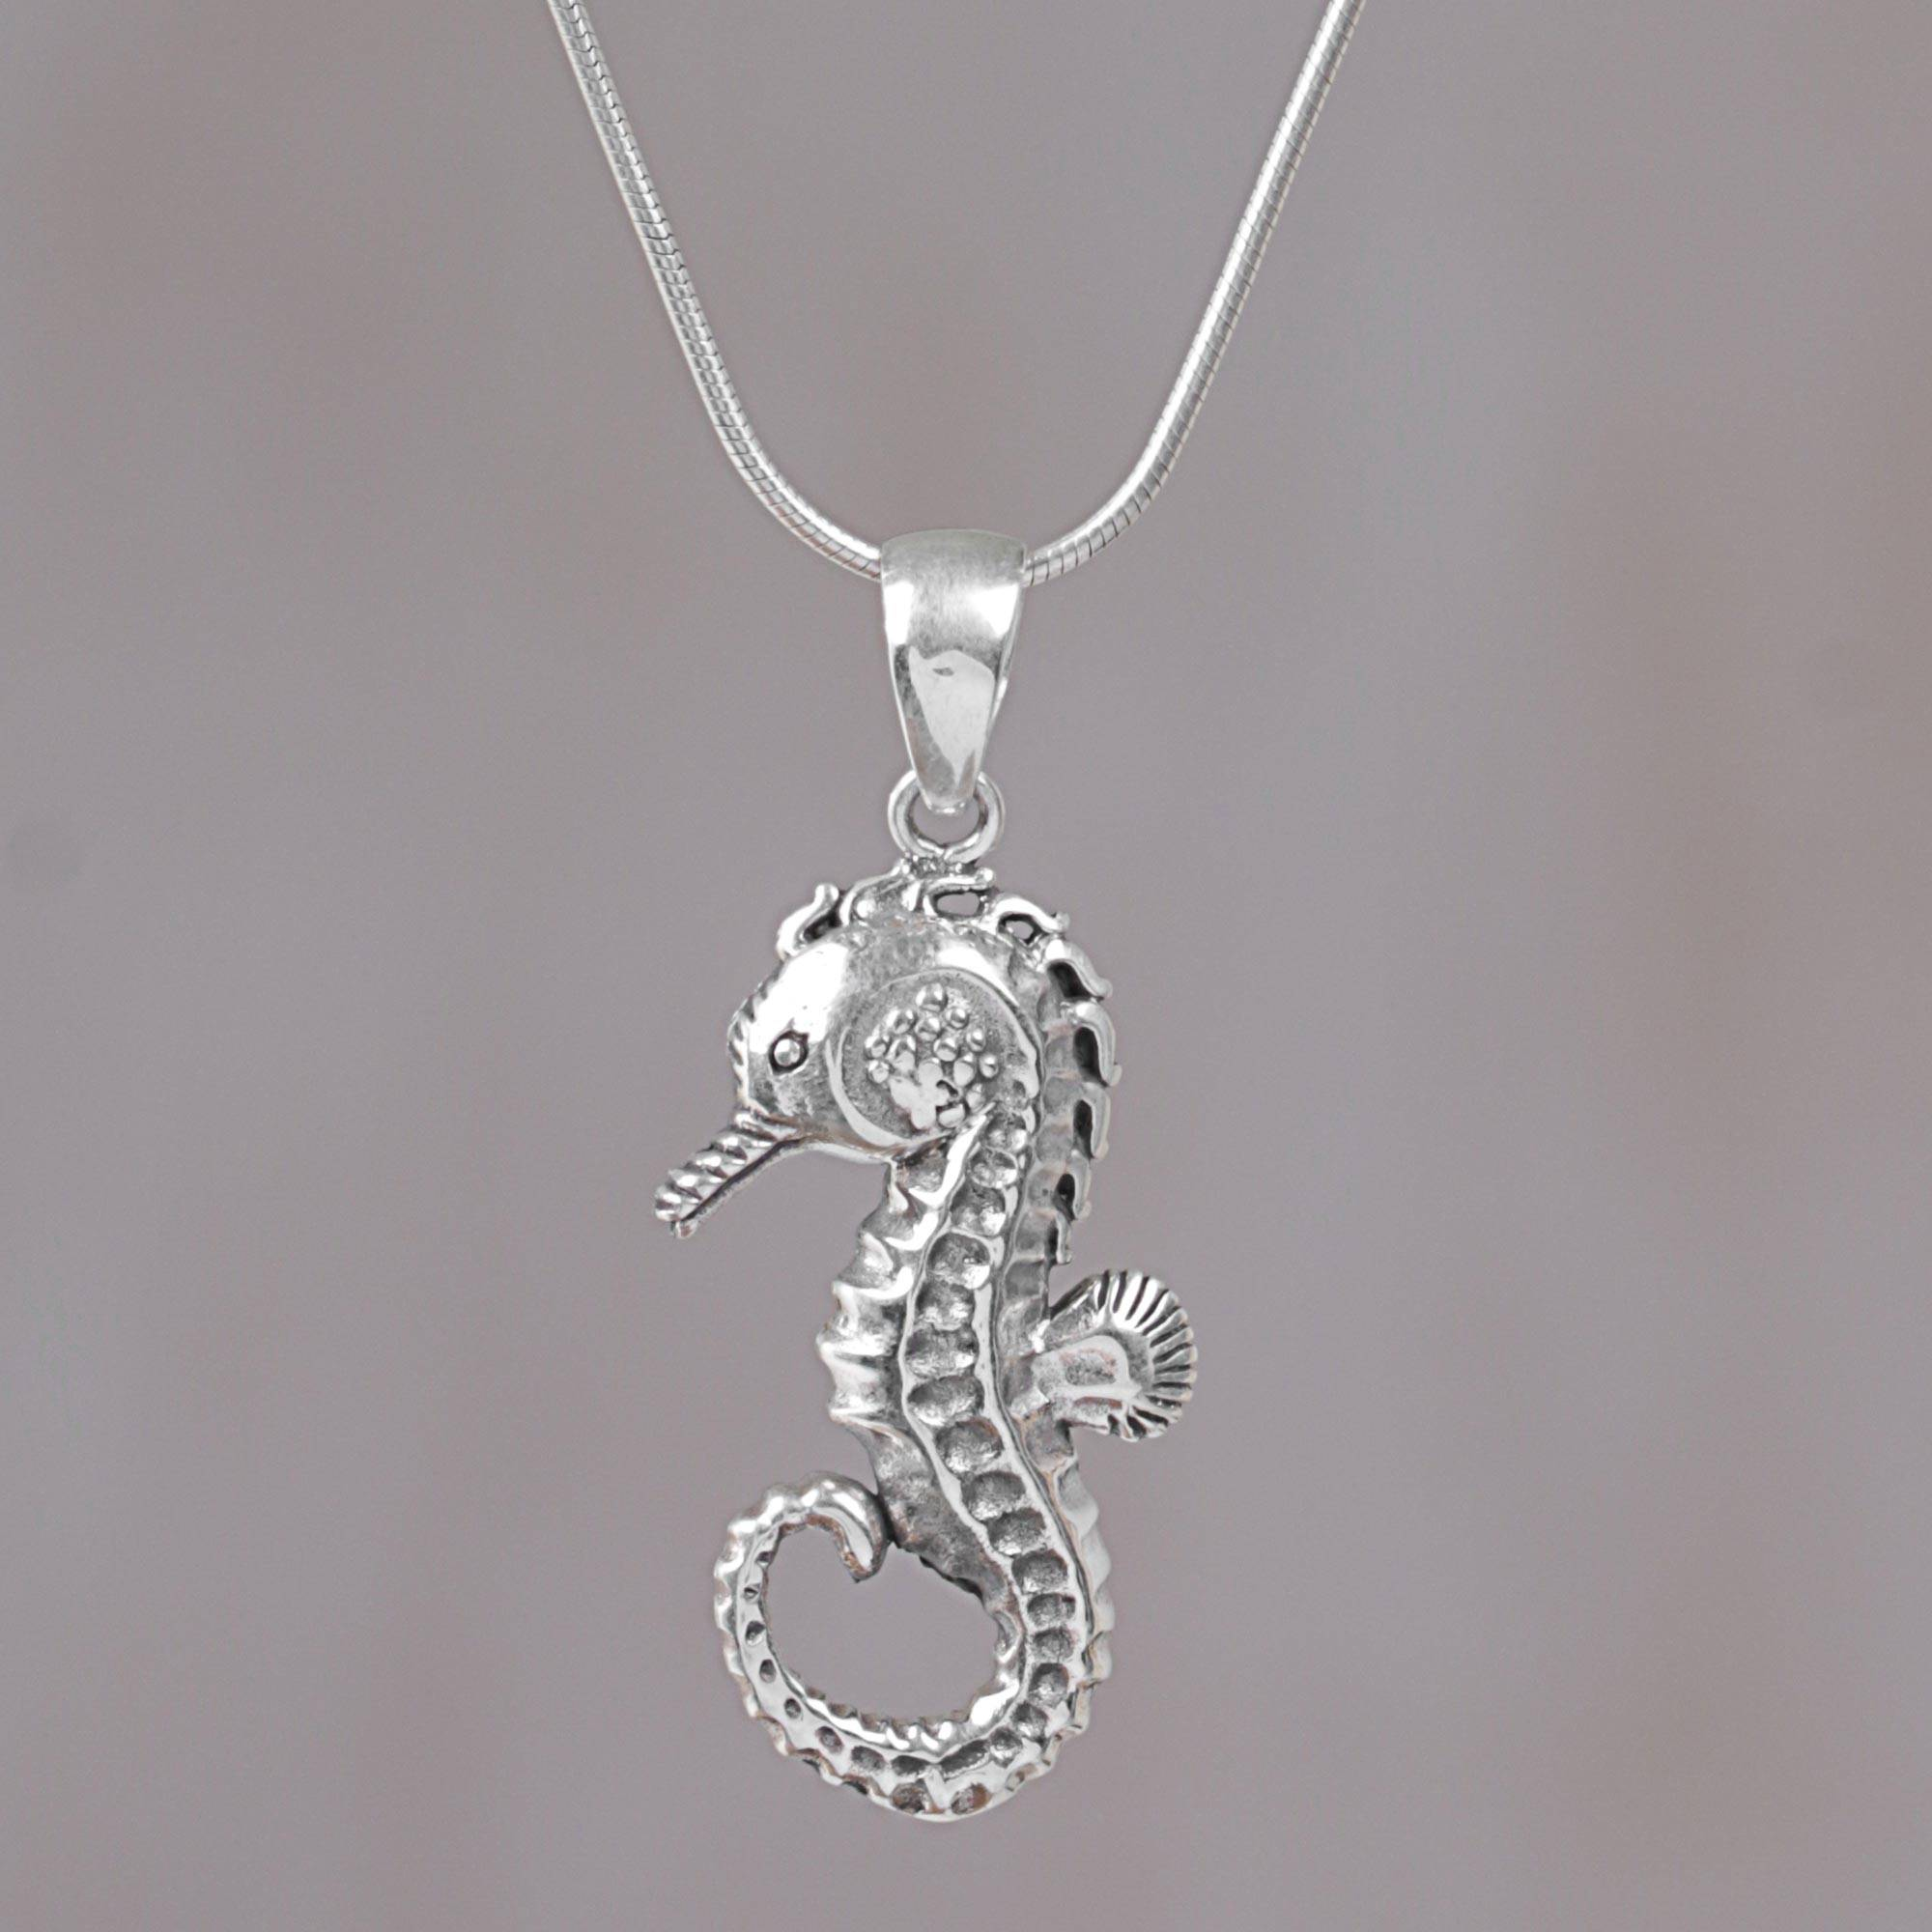 goldfilled products heart seahorse length necklace of kiikers horse floating wow copy sterling sea silver any